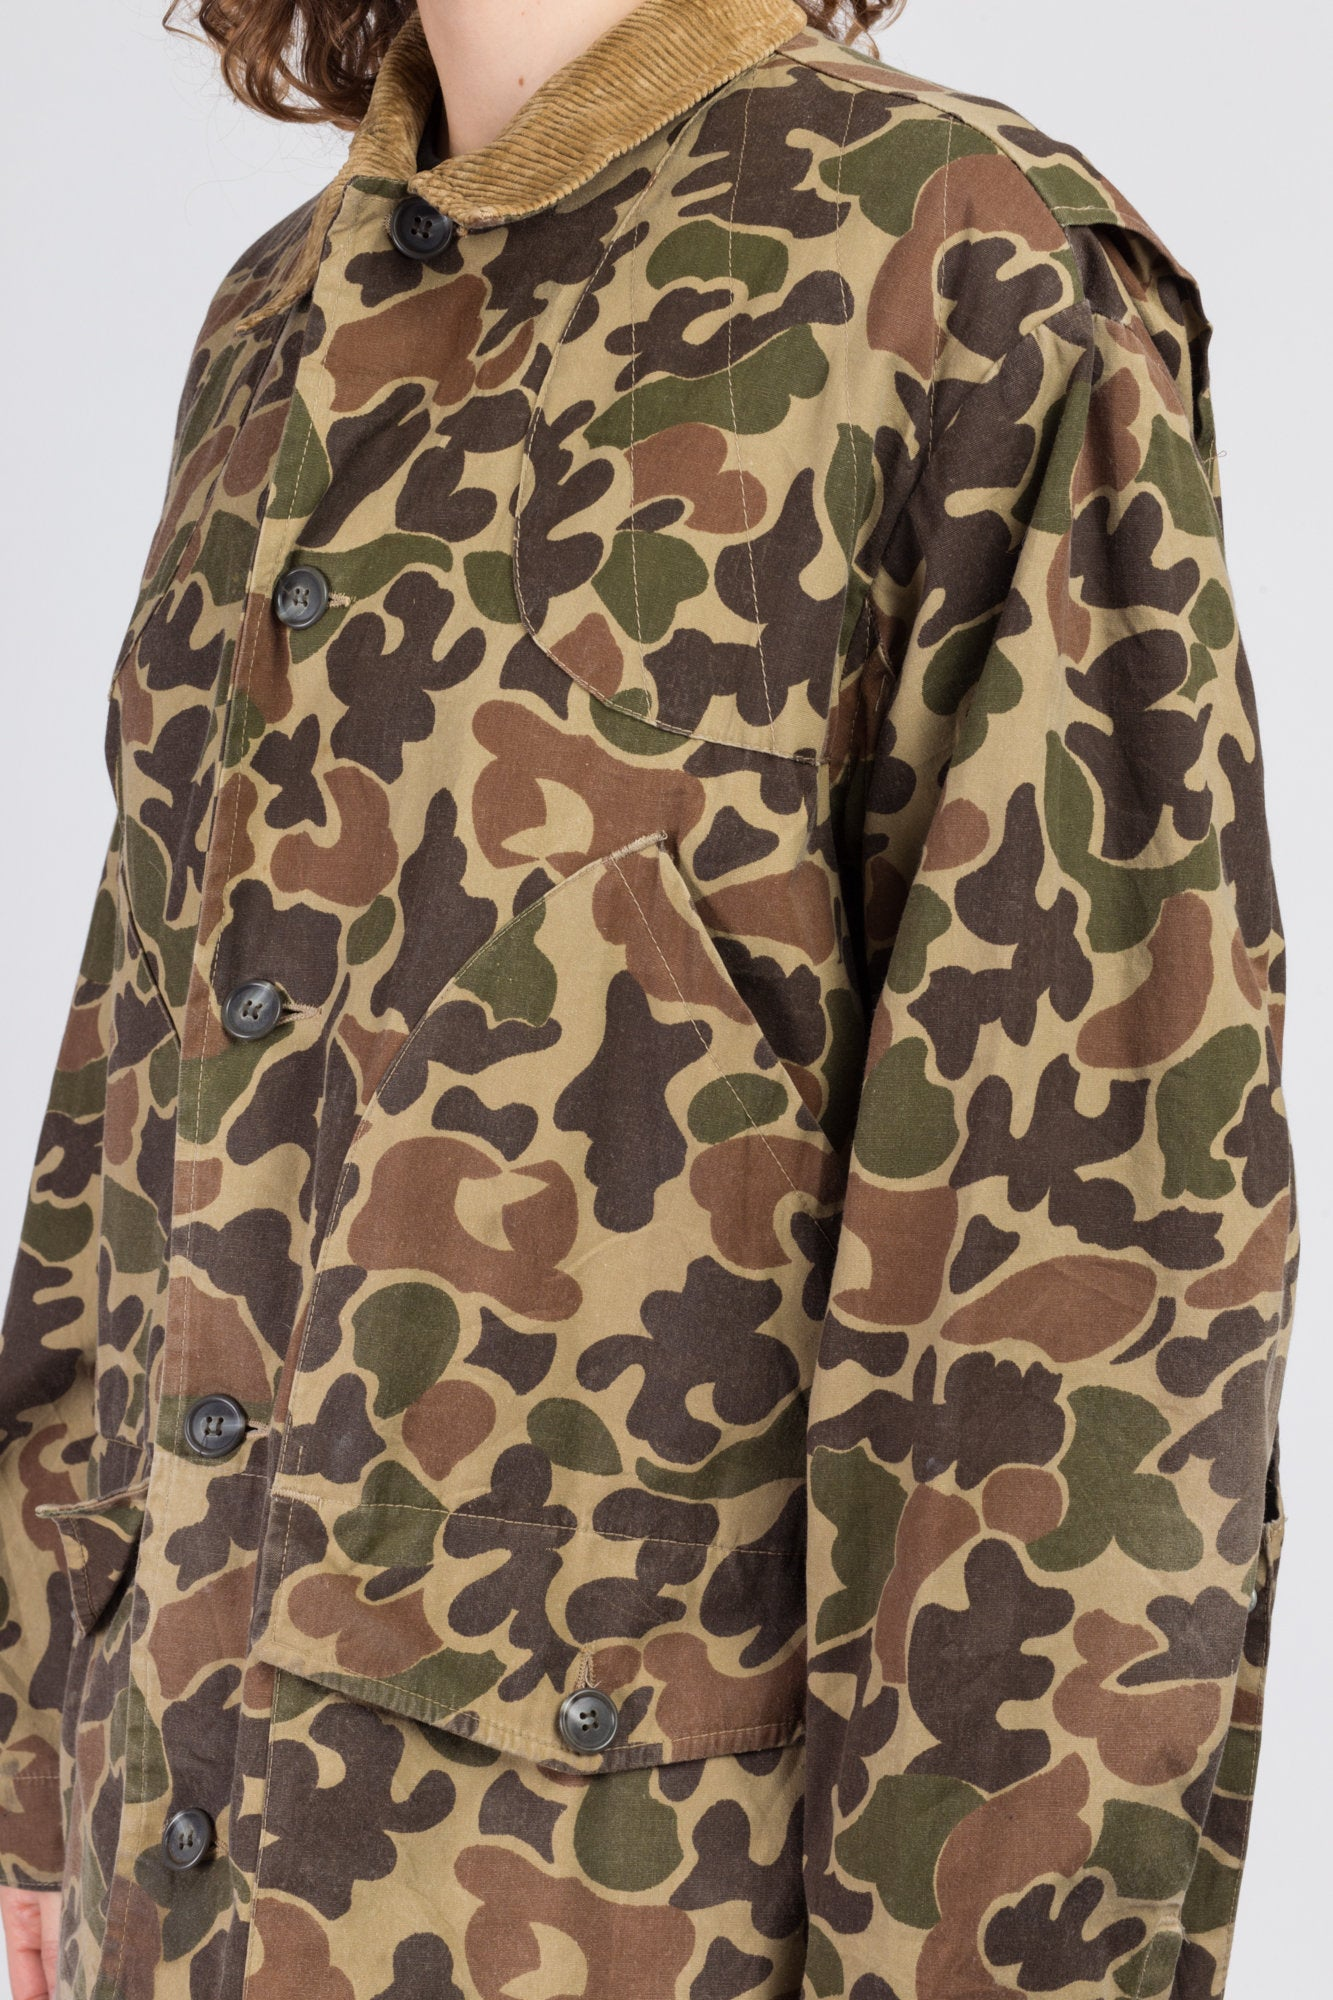 70s Camouflage Hunting Jacket - Men's Large